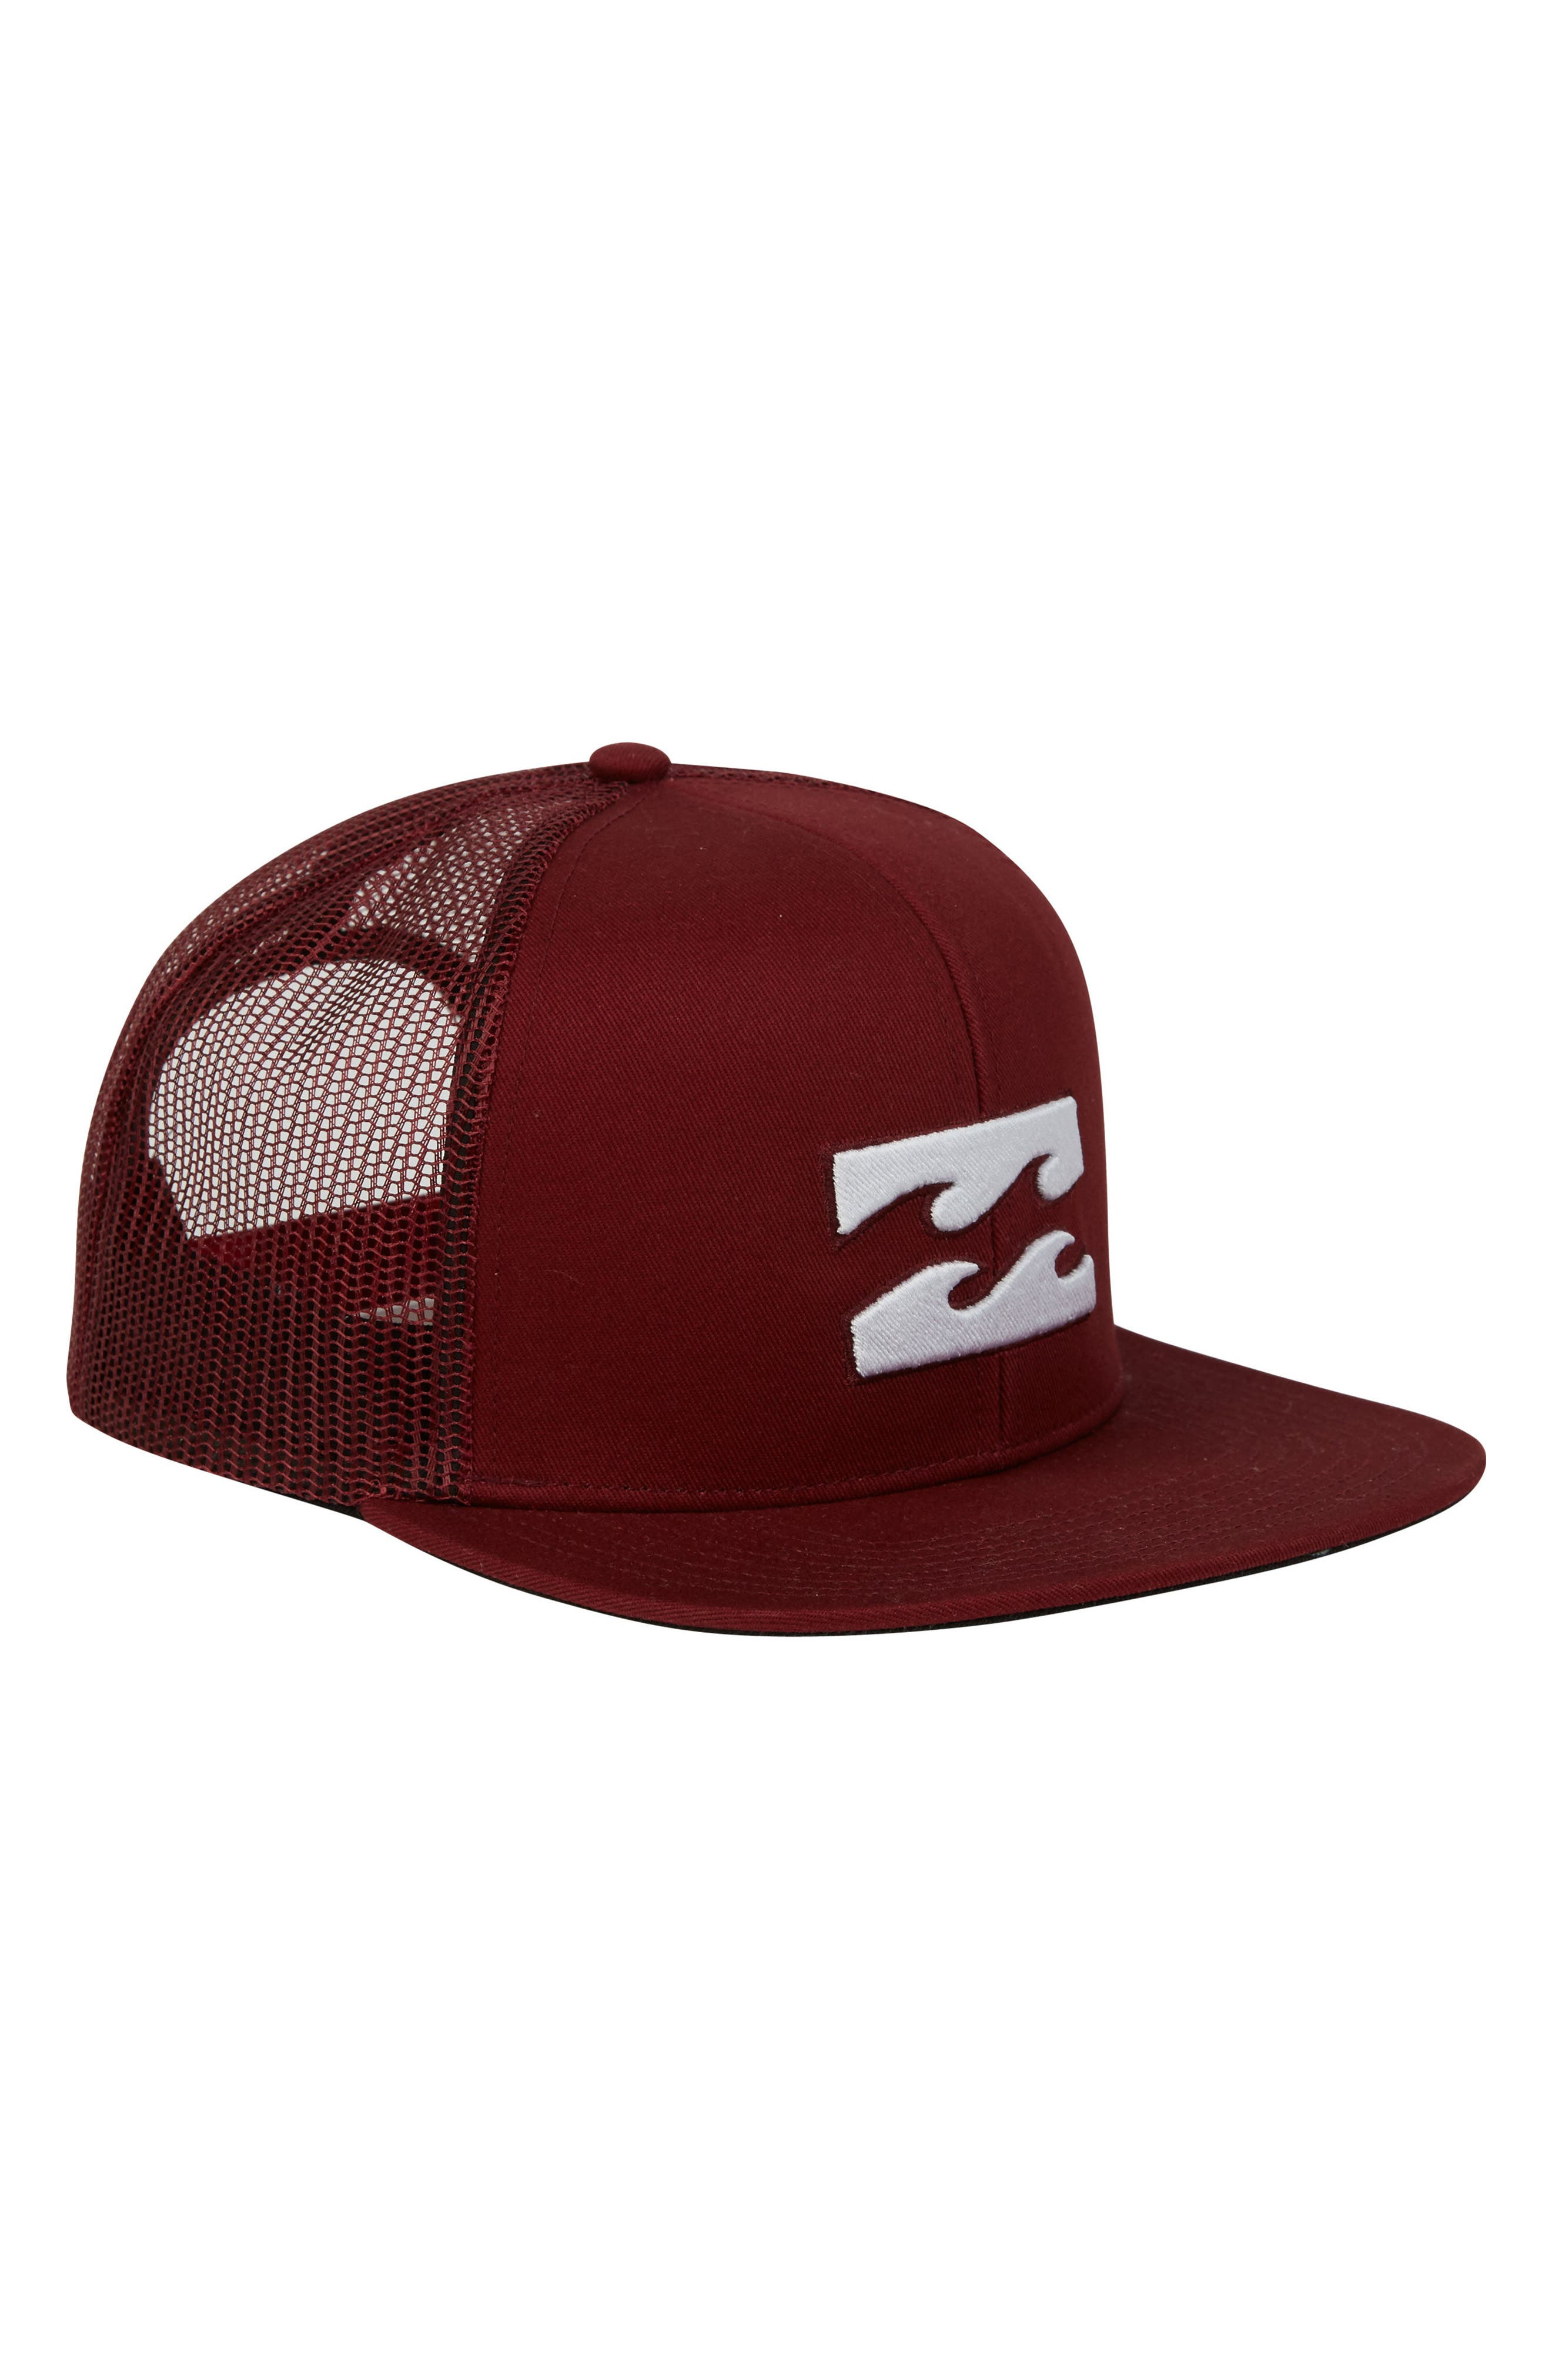 All Day Trucker Hat,                             Main thumbnail 8, color,